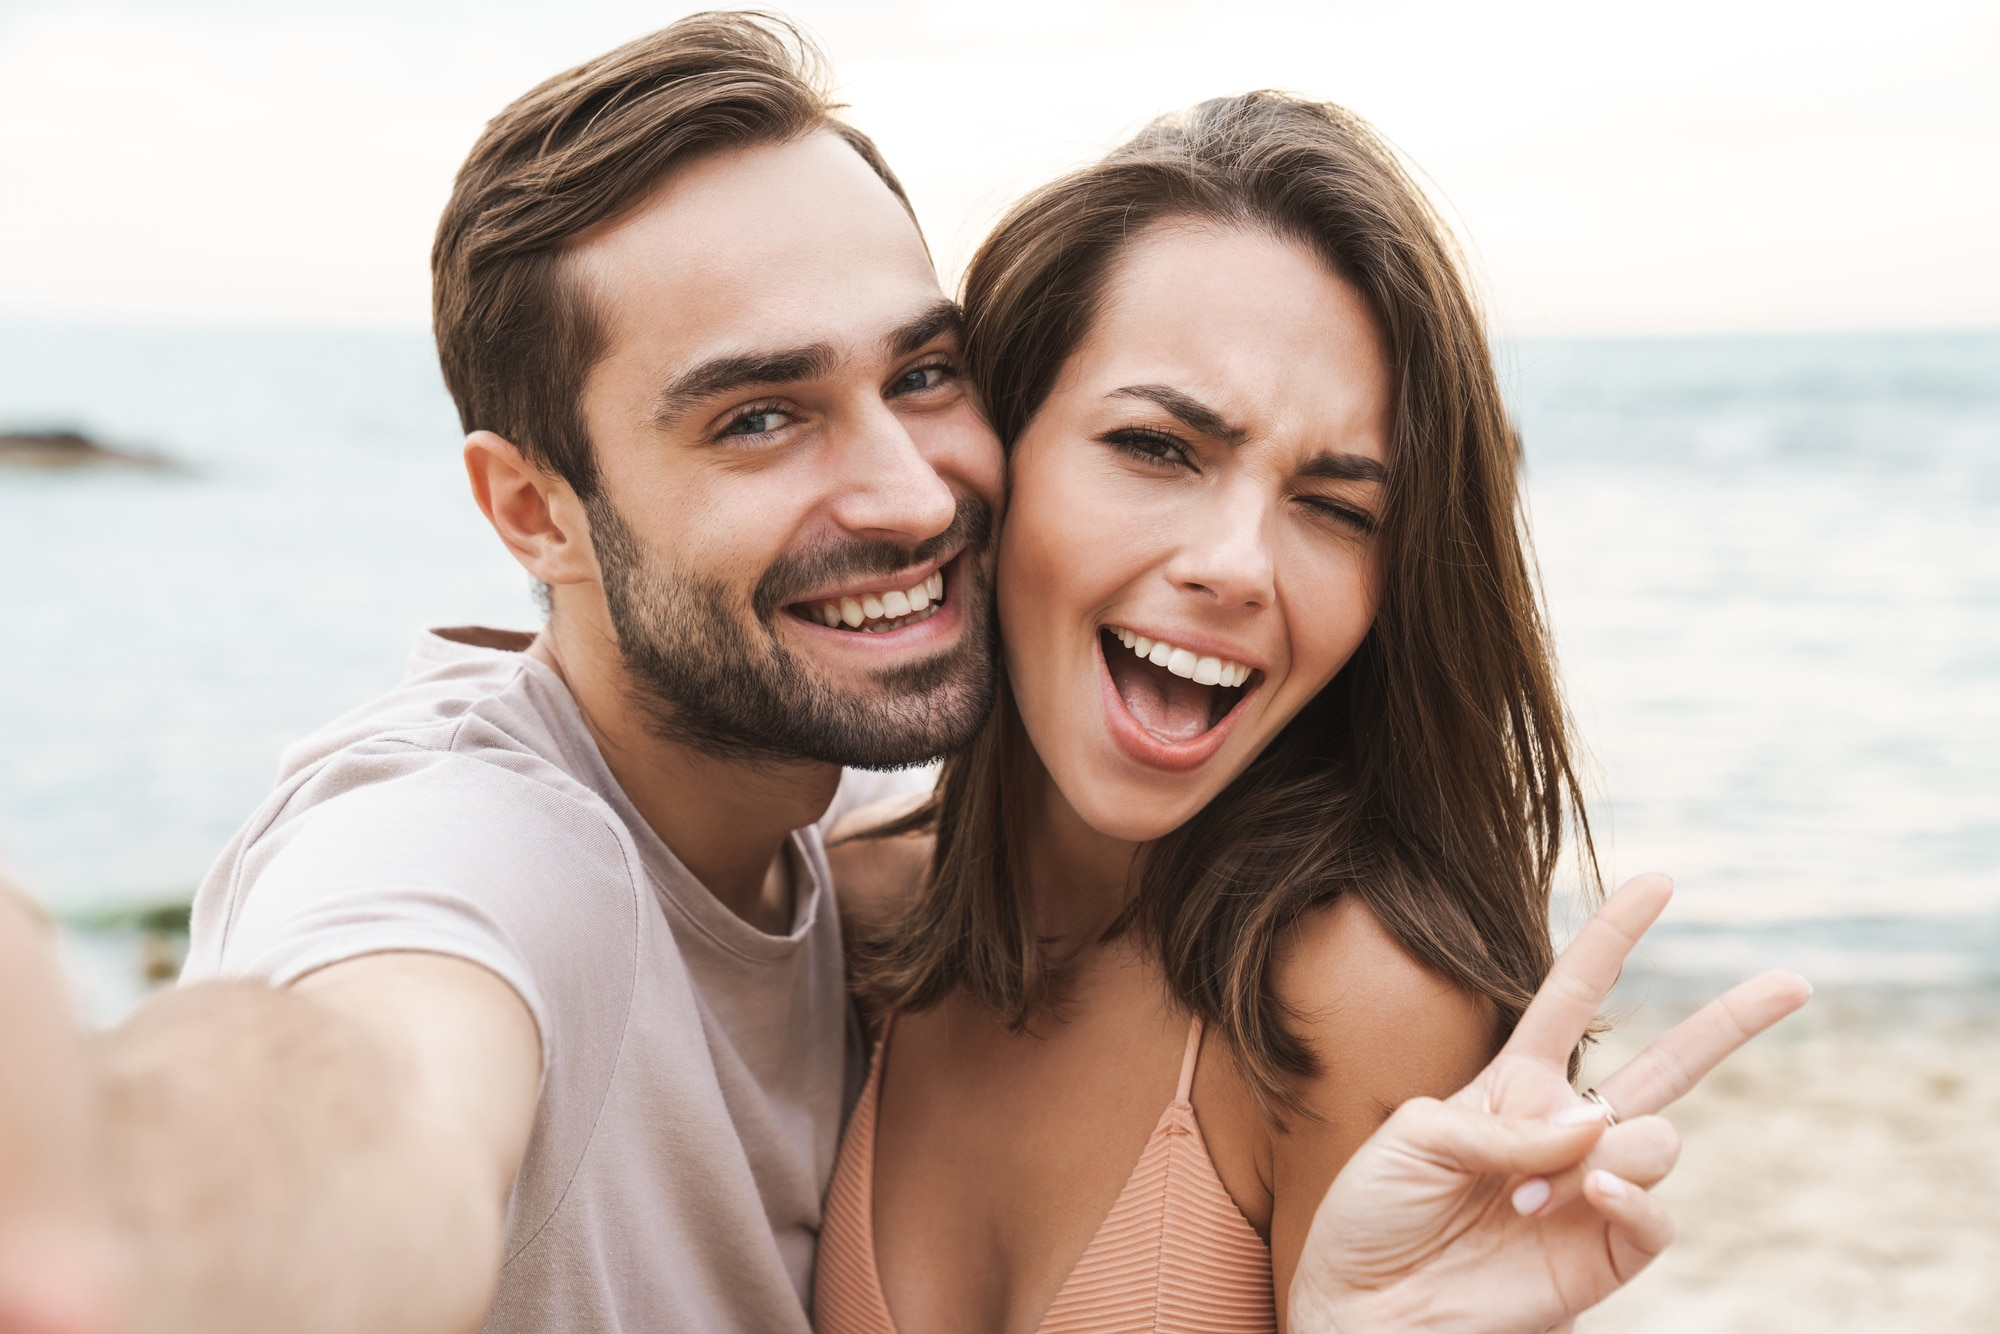 Photo of smiling young couple gesturing peace sign and taking selfie photo while resting on sunny beach